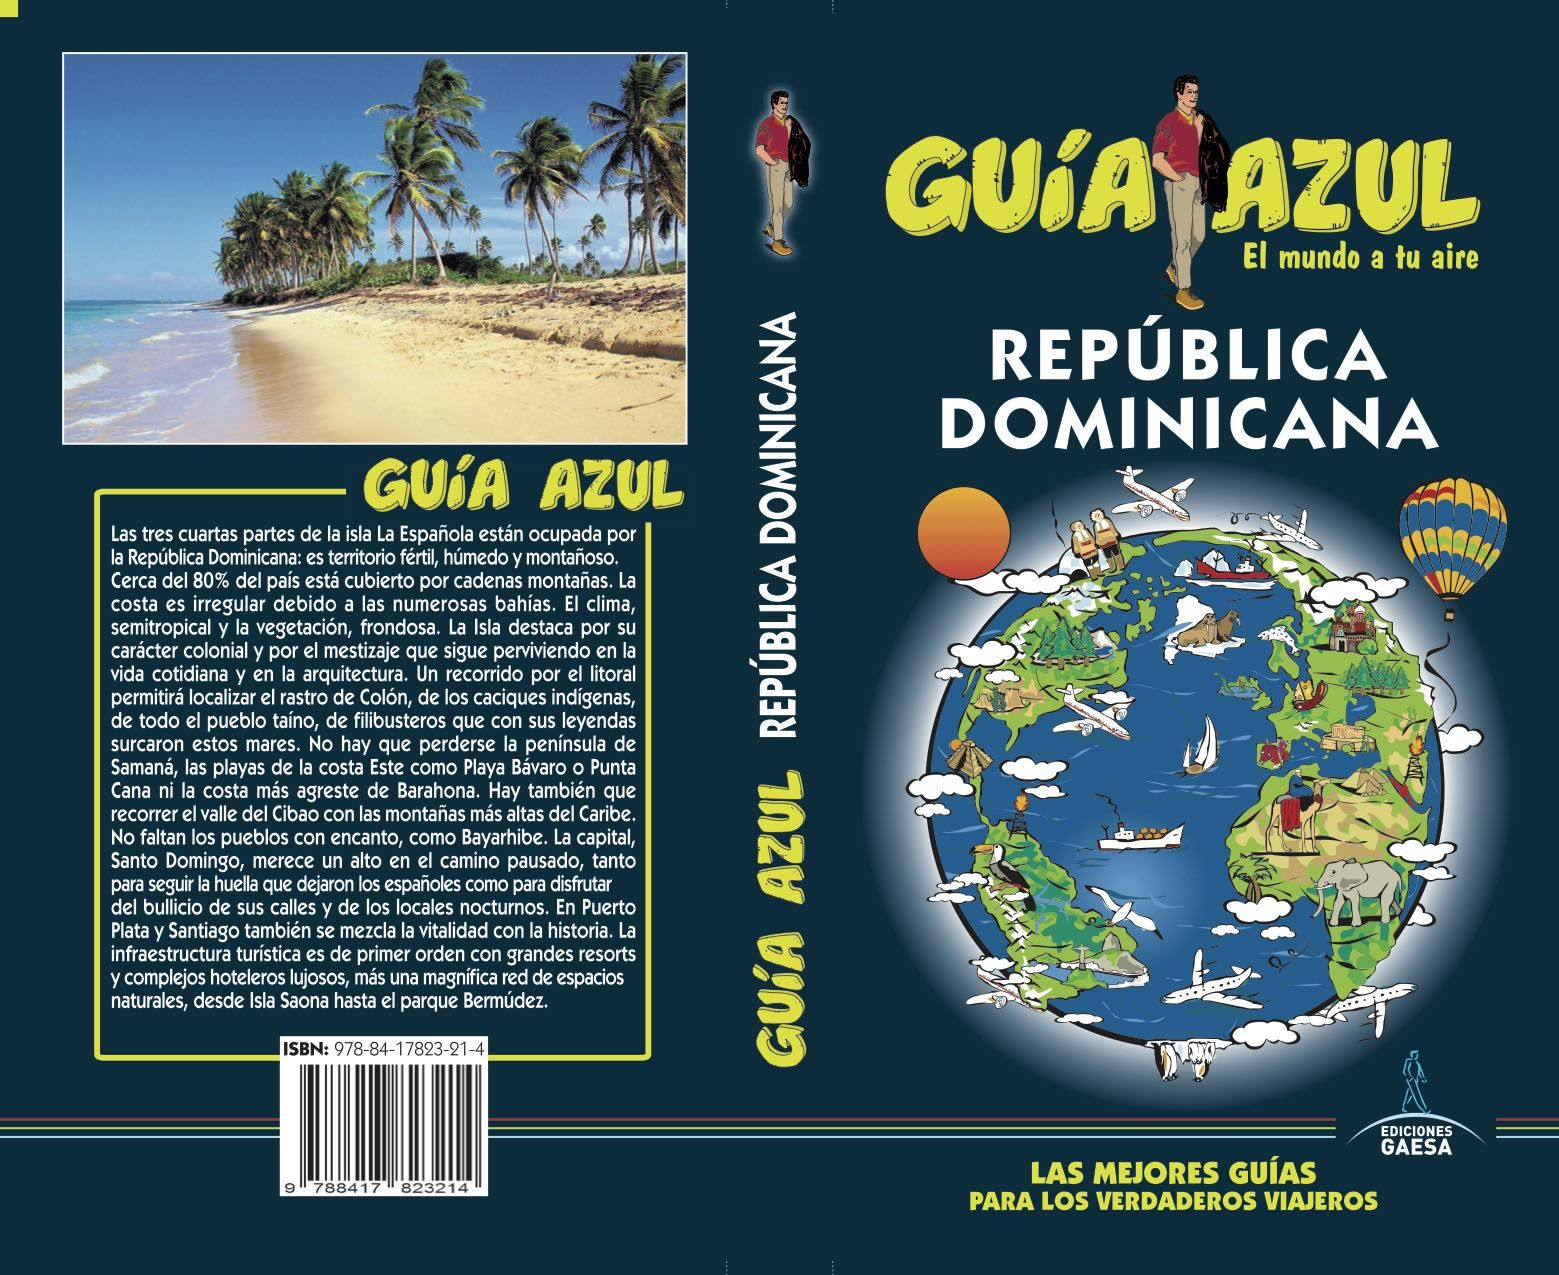 REPUBLICA DOMINICANA GUIA AZUL